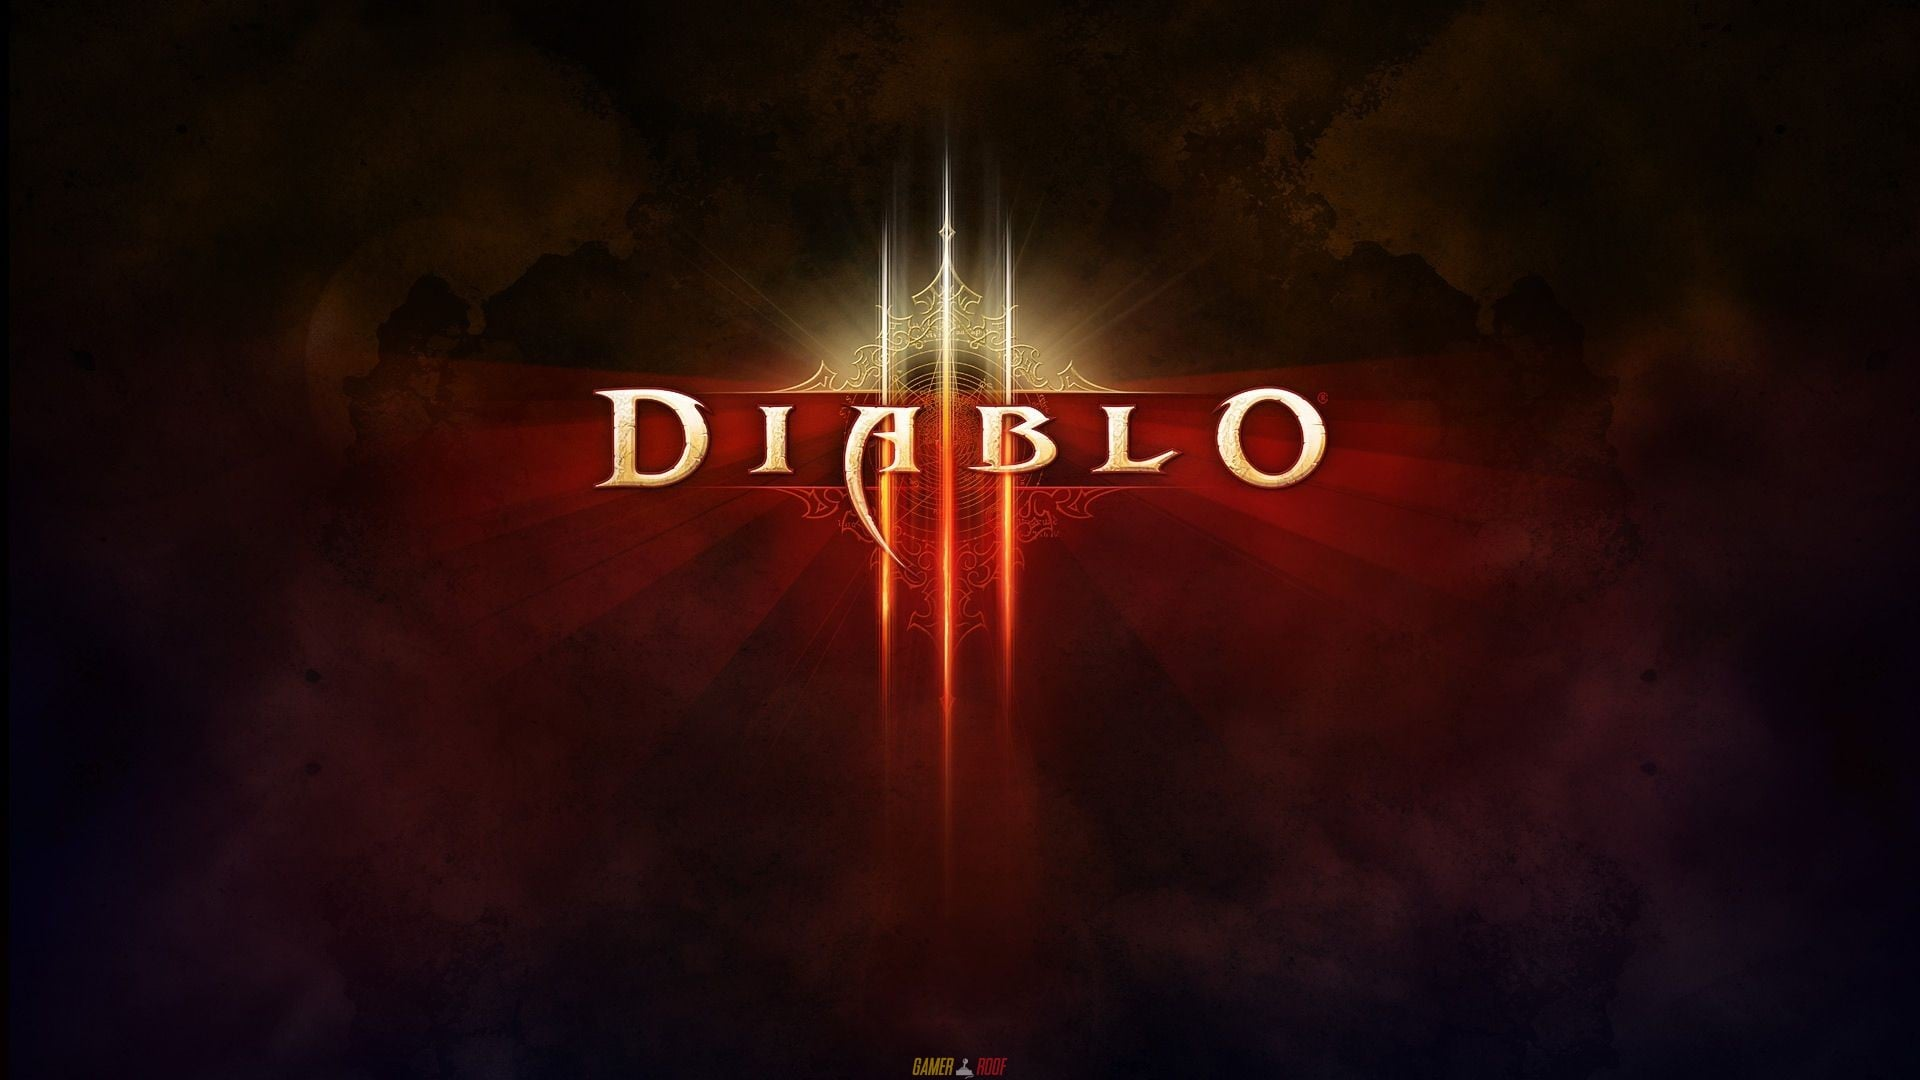 Diablo 3 PS4 Version Full Game Free Download